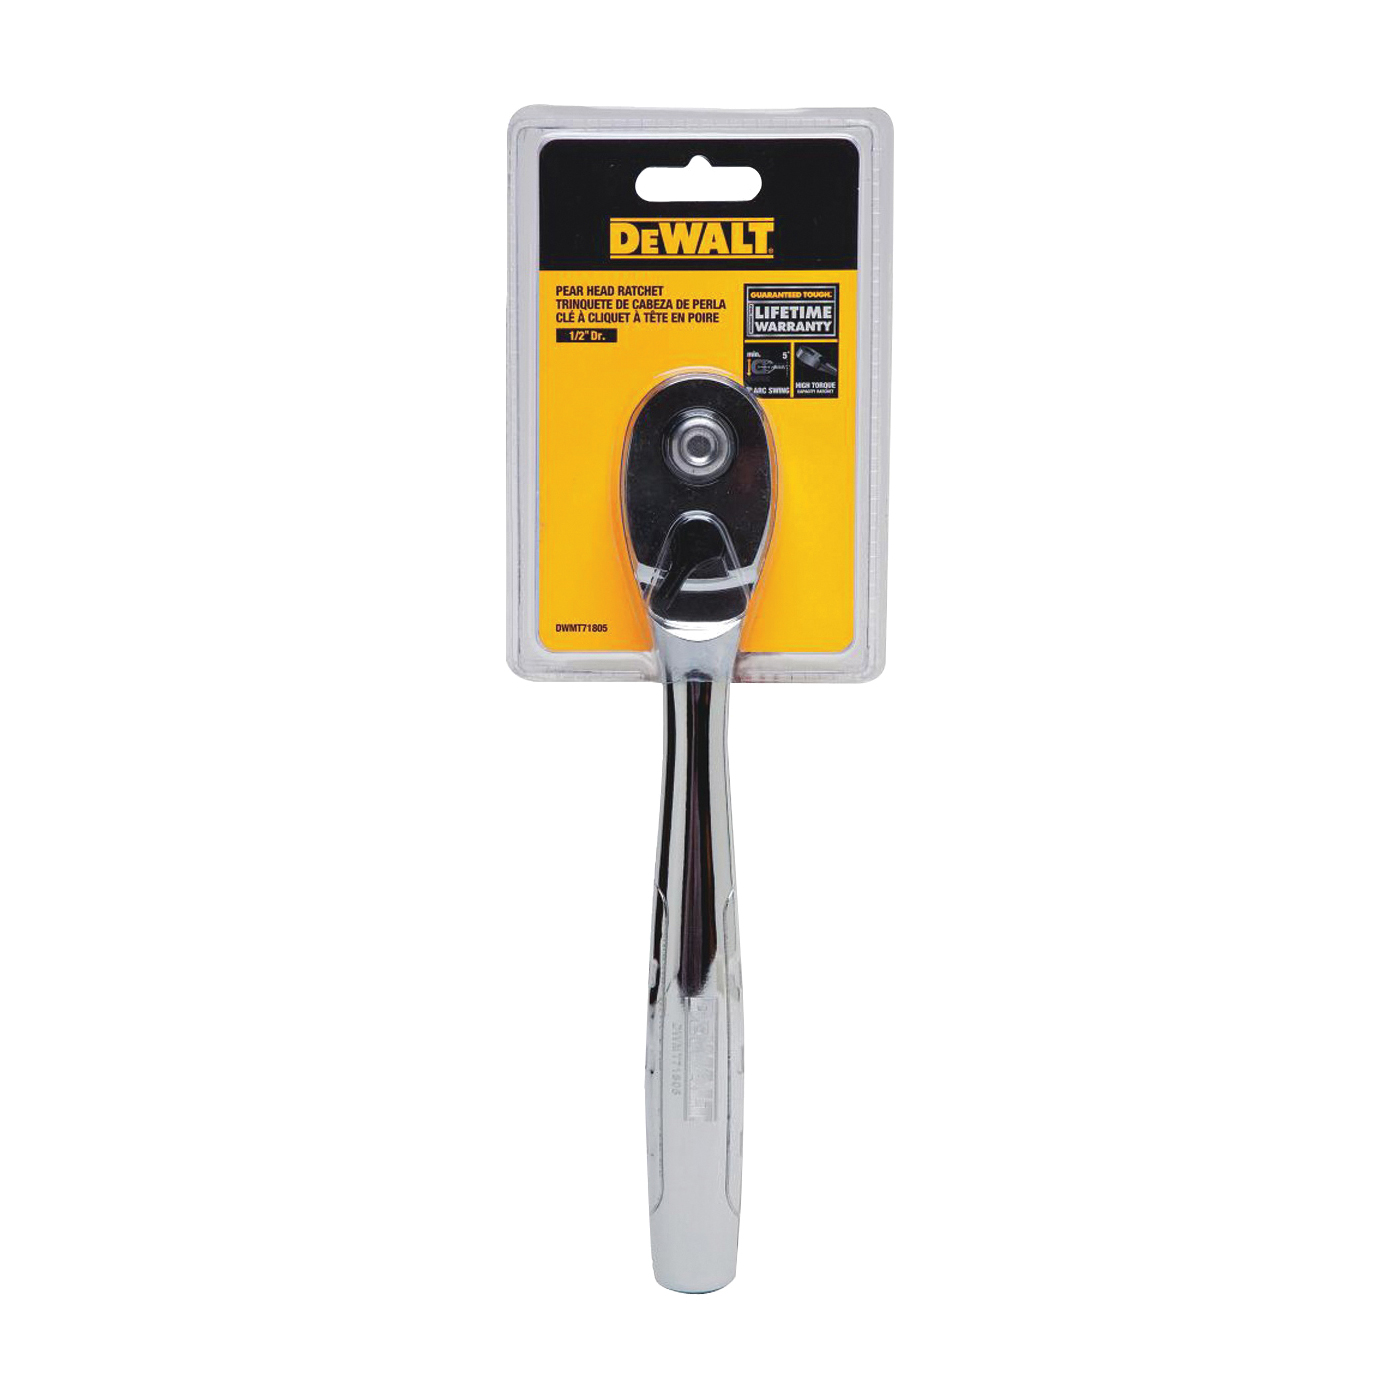 Picture of DeWALT DWMT71805 Ratchet, 1/2 in Drive, 12-6/16 in OAL, Chrome